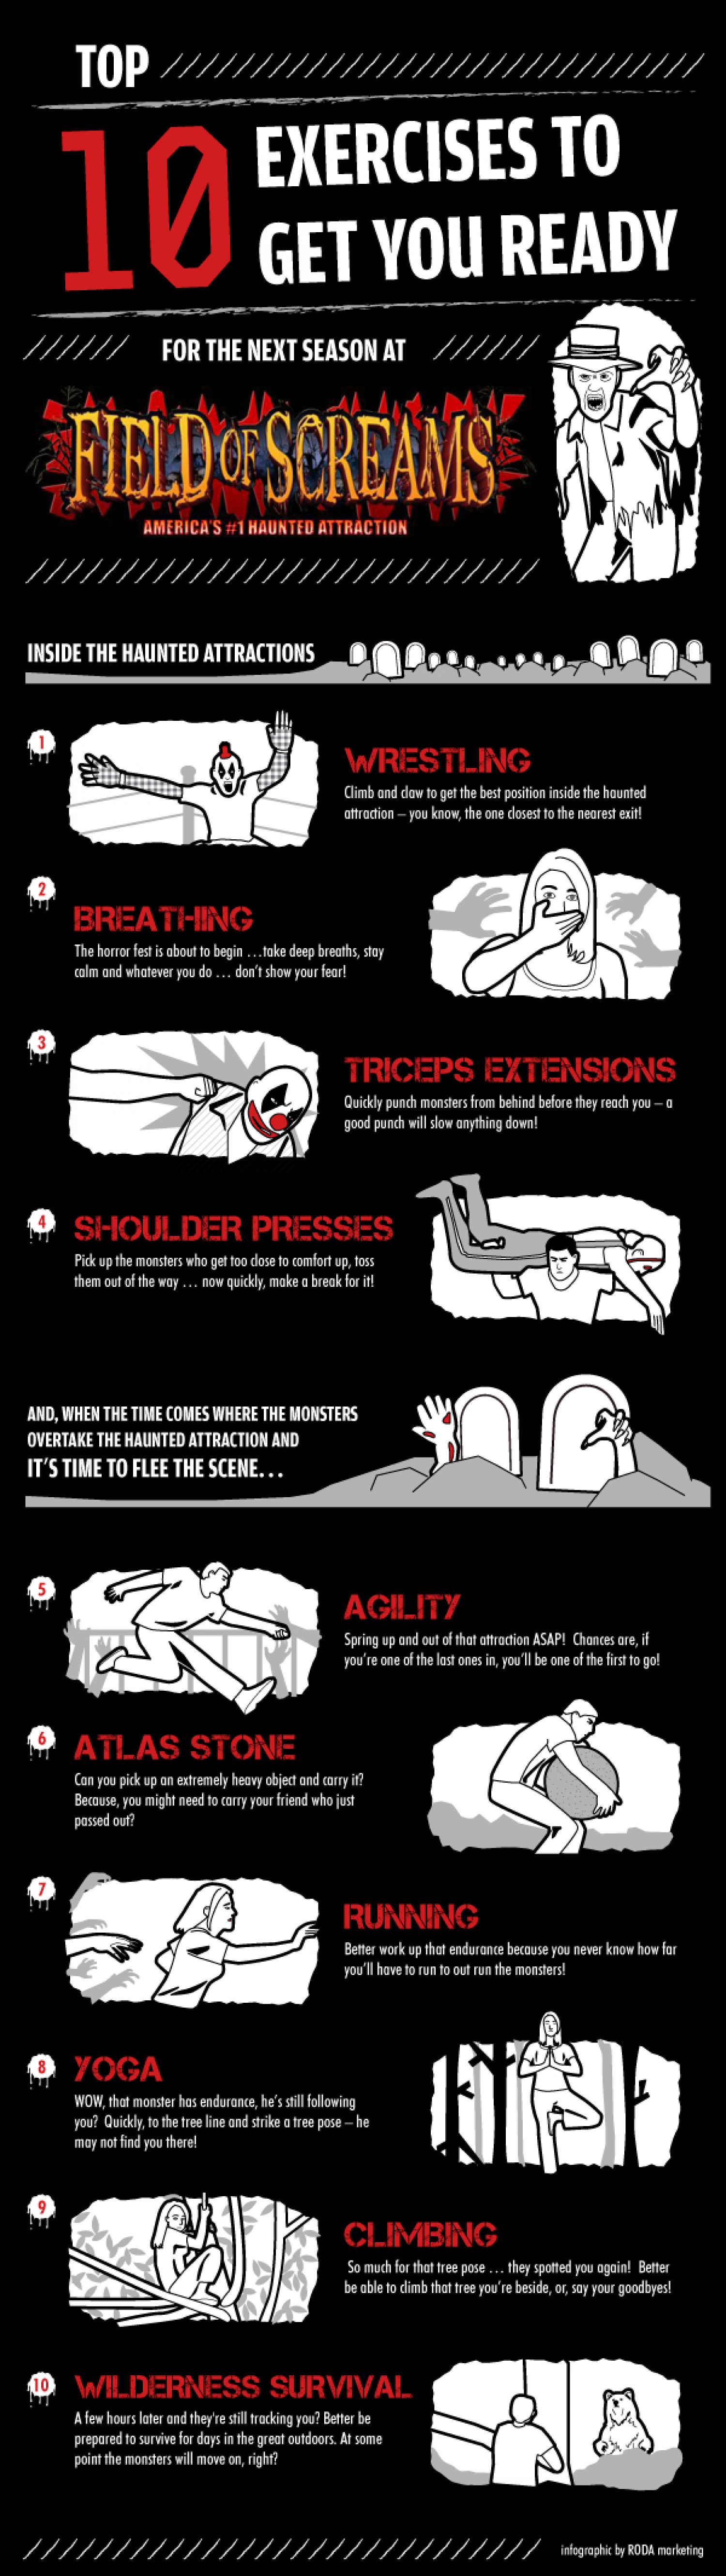 Top 10 Exercises To Get You Ready For Next Season At FOS Infographic